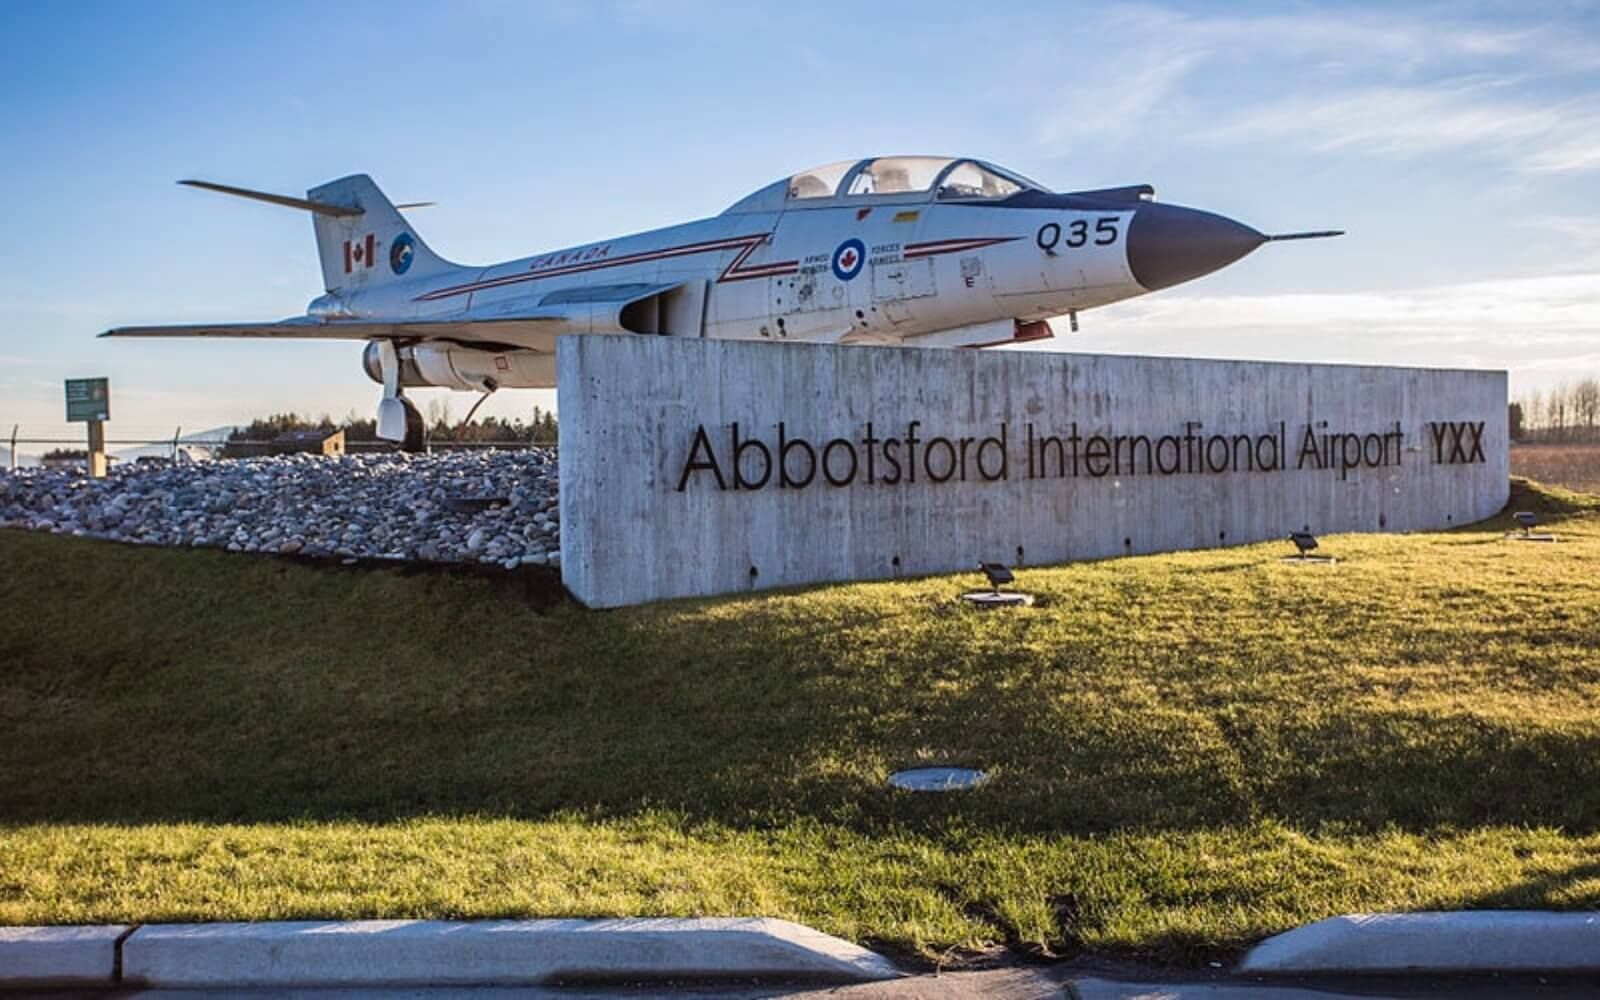 A military jet sits beside the YXX sign